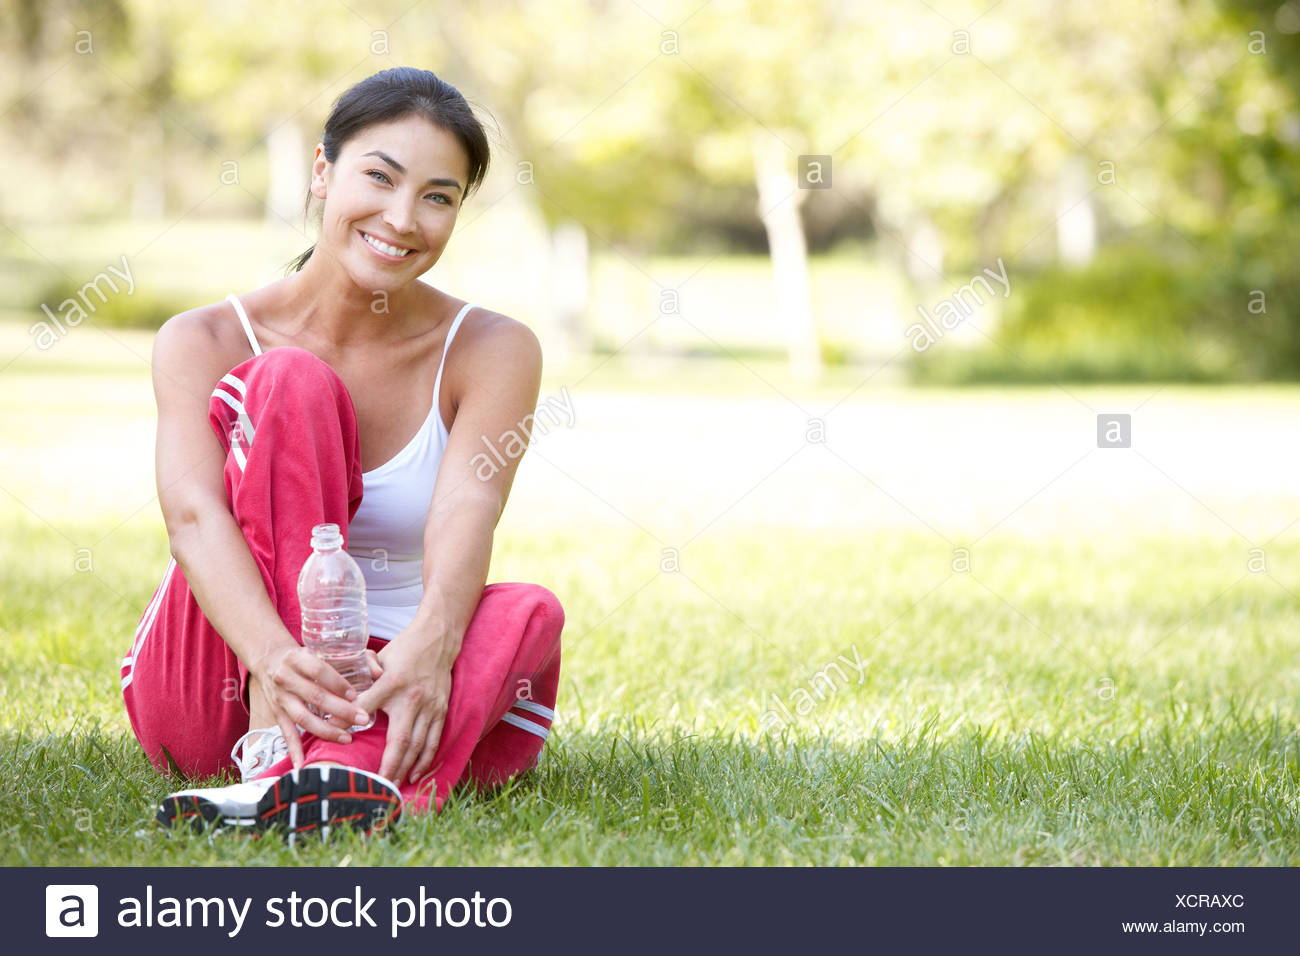 Young Woman Resting After Exercise Stock Photo